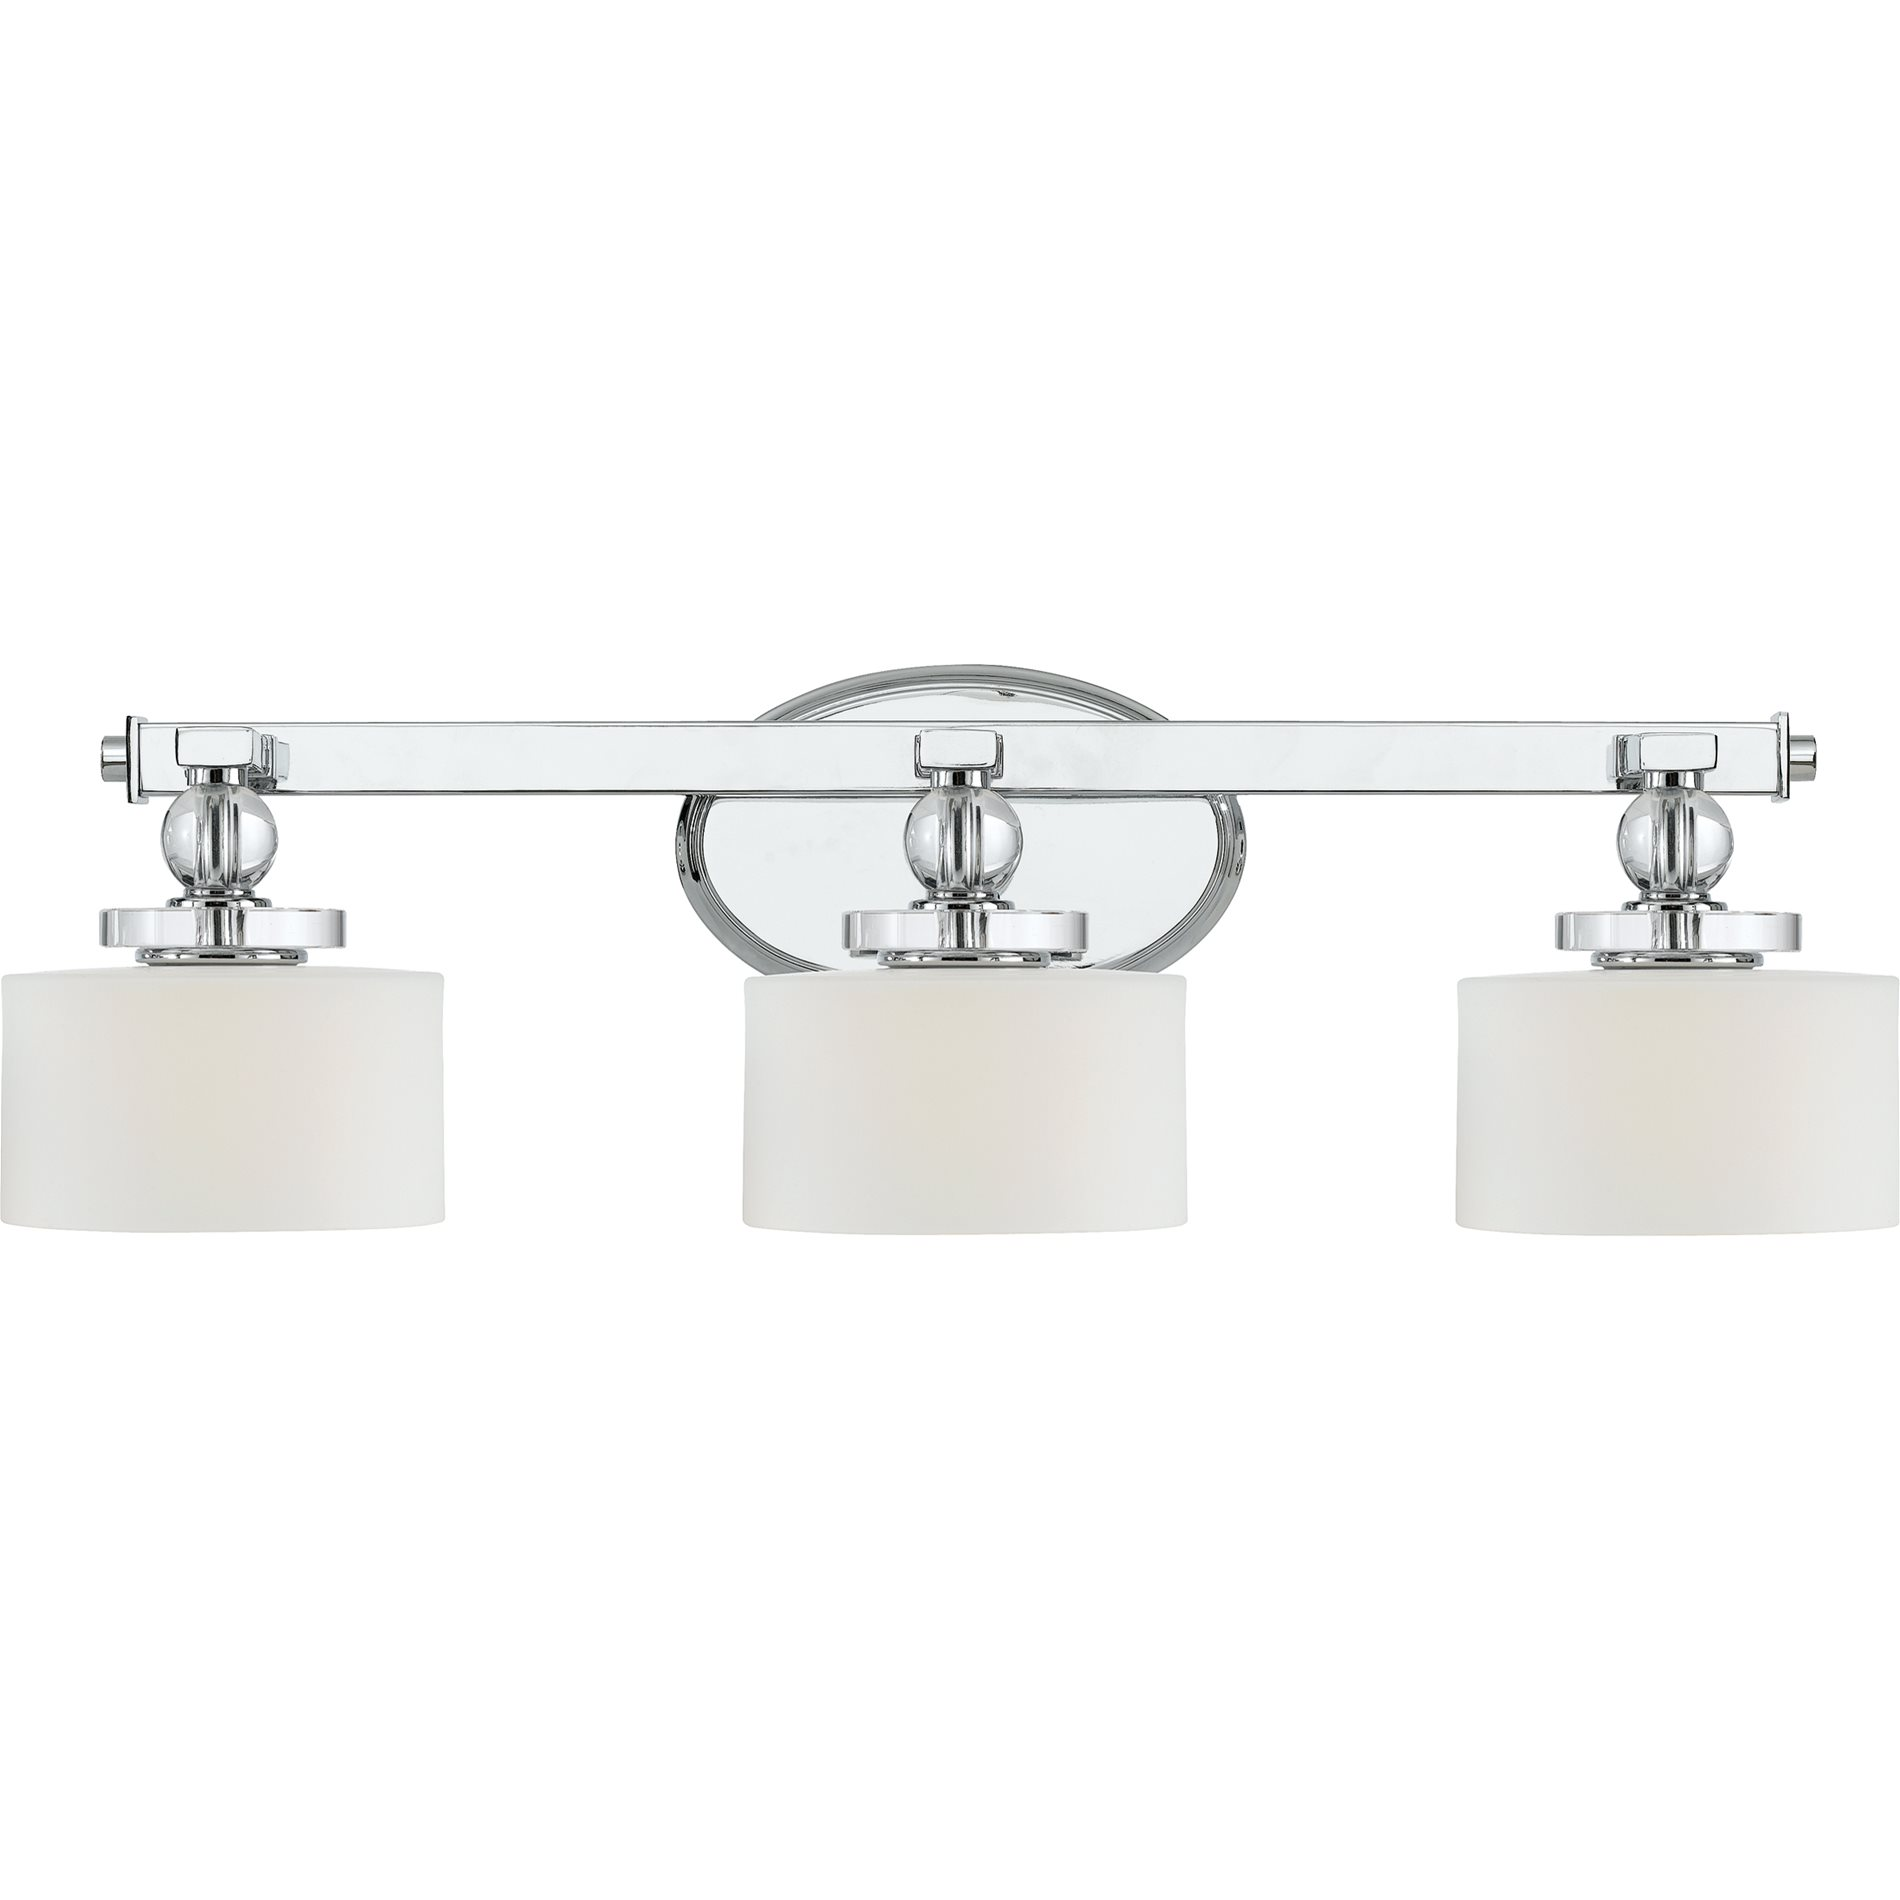 Downtown Modern Contemporary Bathroom Vanity Light